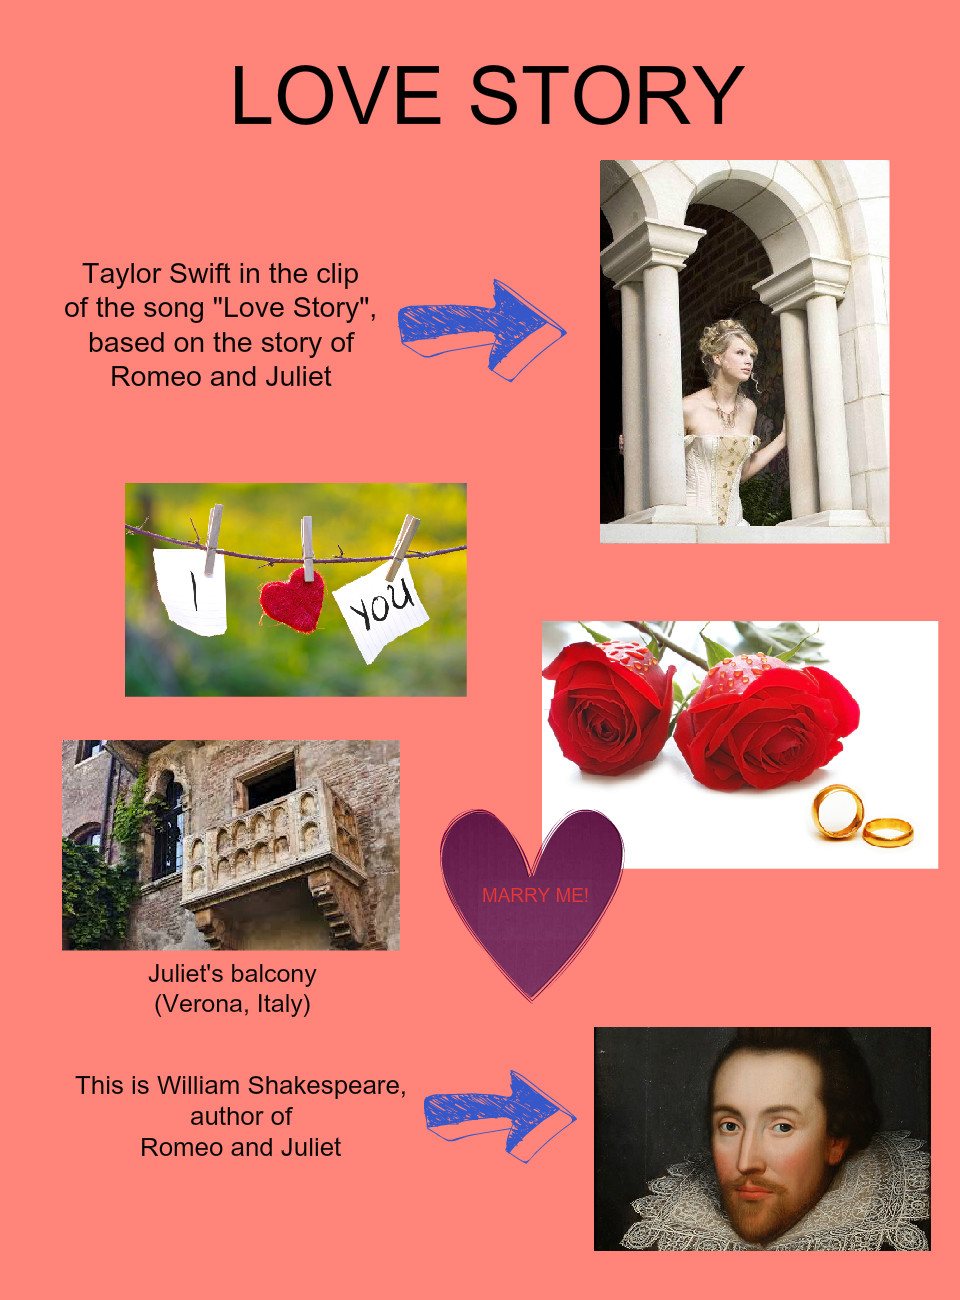 taylor swift love story romeo and juliet